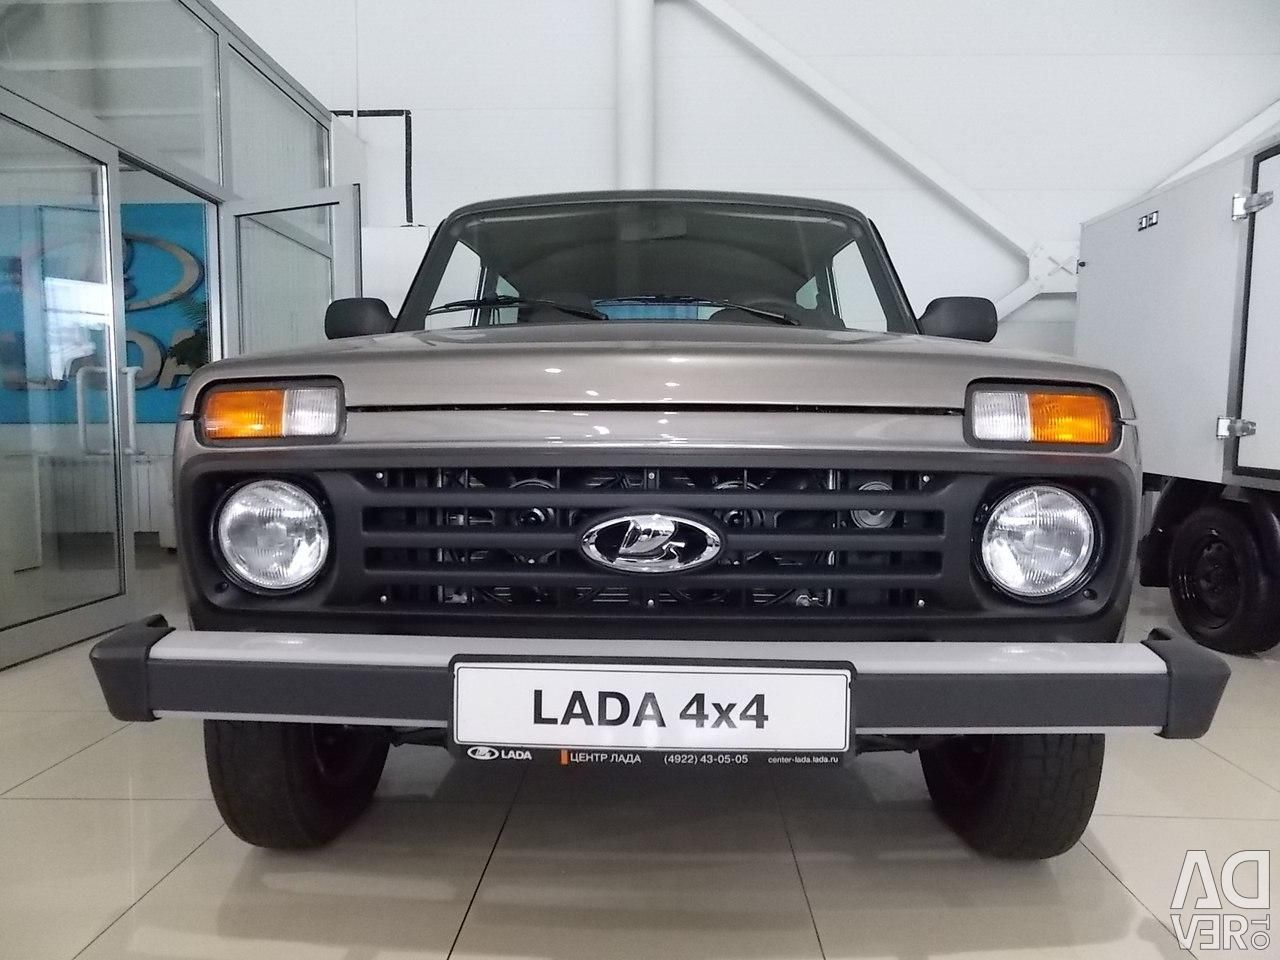 vaz lada 4x4 2018 city vladimir advert to sell price 499 900 rub posted. Black Bedroom Furniture Sets. Home Design Ideas